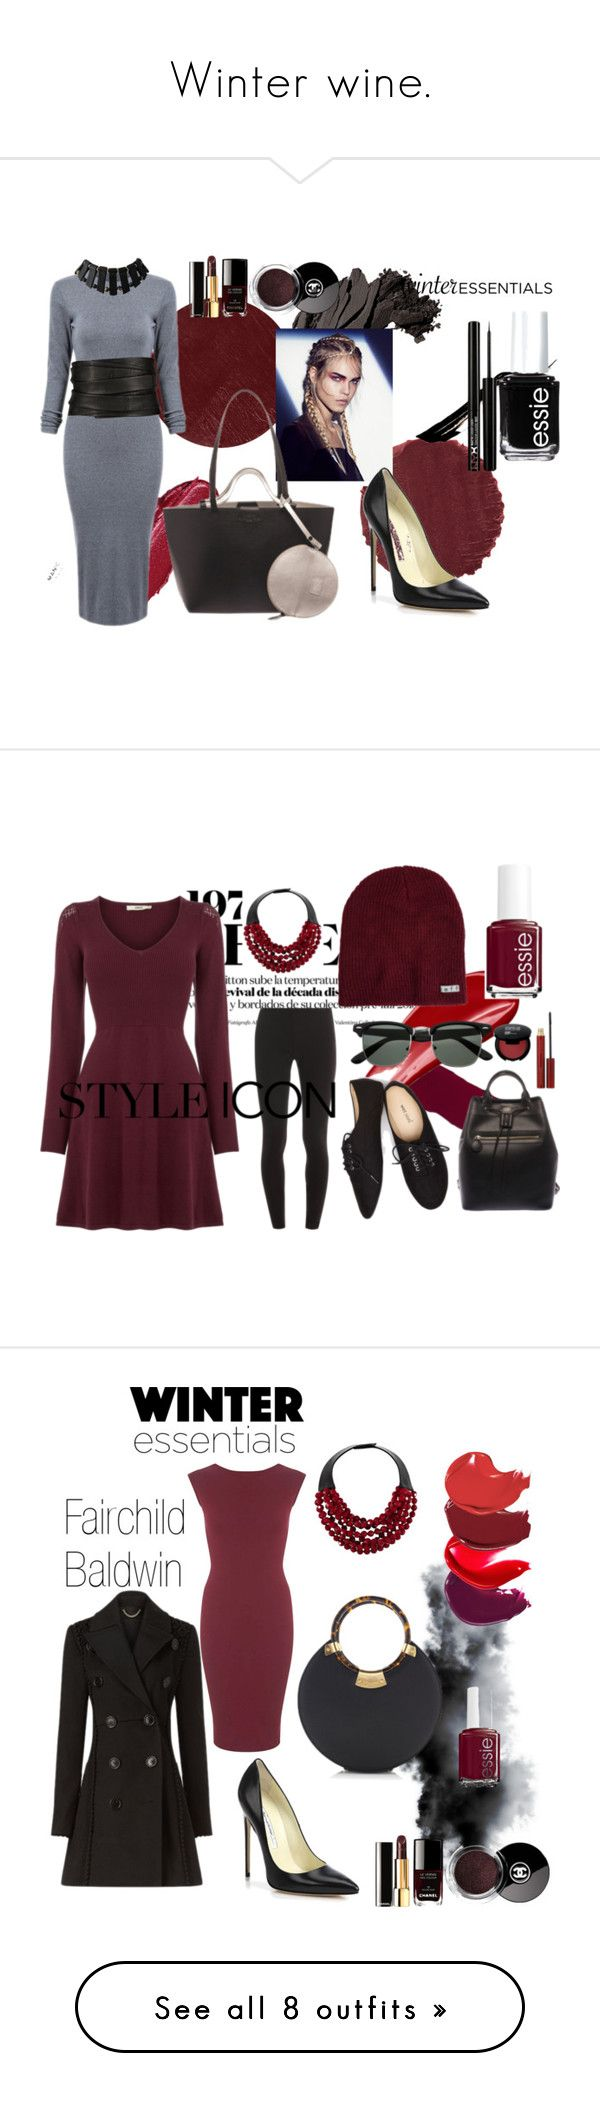 """""""Winter wine."""" by fairchild-baldwin ❤ liked on Polyvore featuring Urban Decay, Burberry, Bobbi Brown Cosmetics, Chanel, Brian Atwood, Essie, The Row, Fairchild Baldwin, Oasis and Hourglass Cosmetics"""